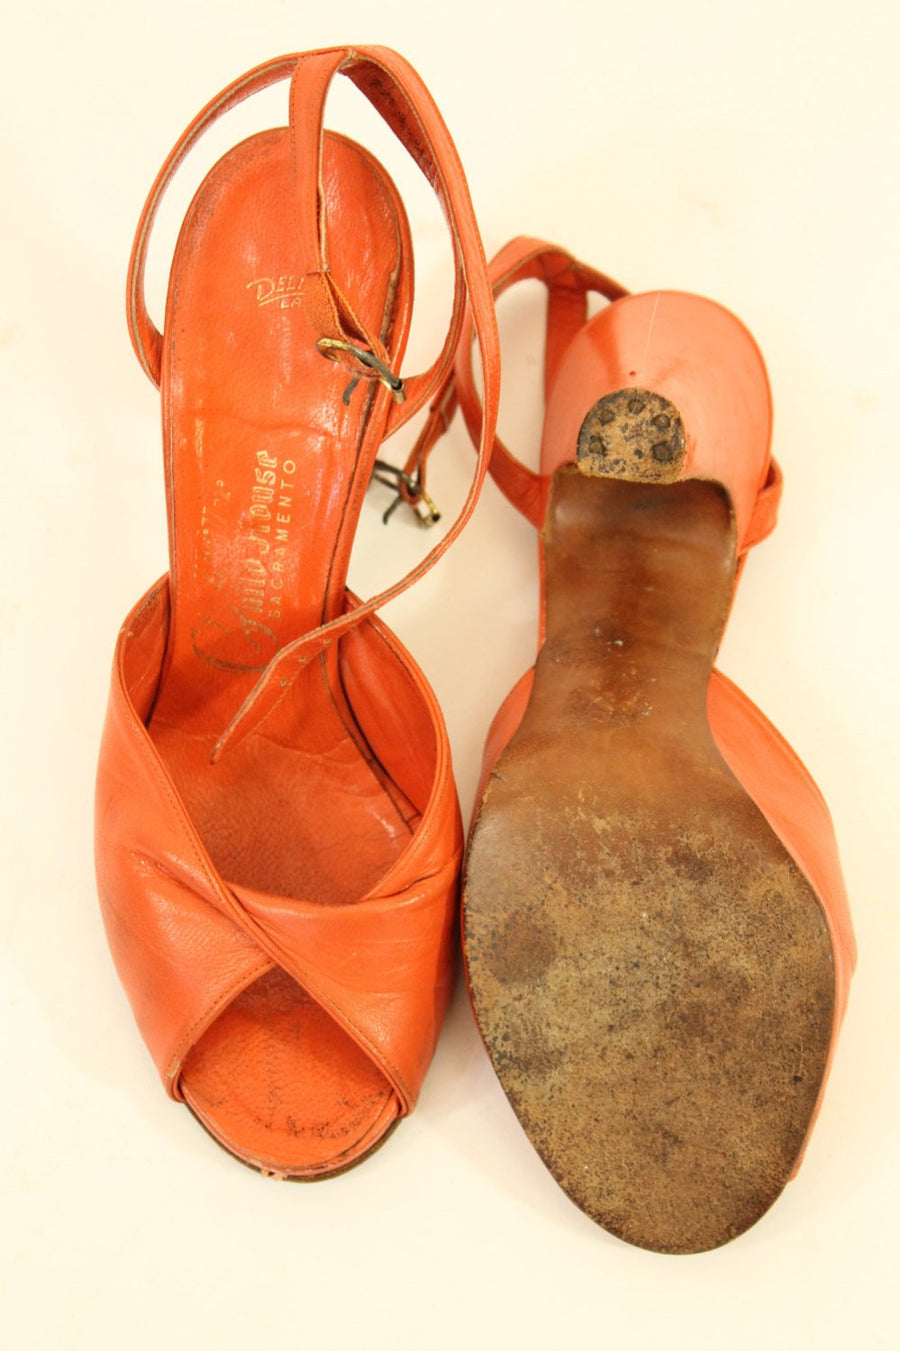 1940s ankle straps | vintage peep toe leather shoes | size 4.5 us